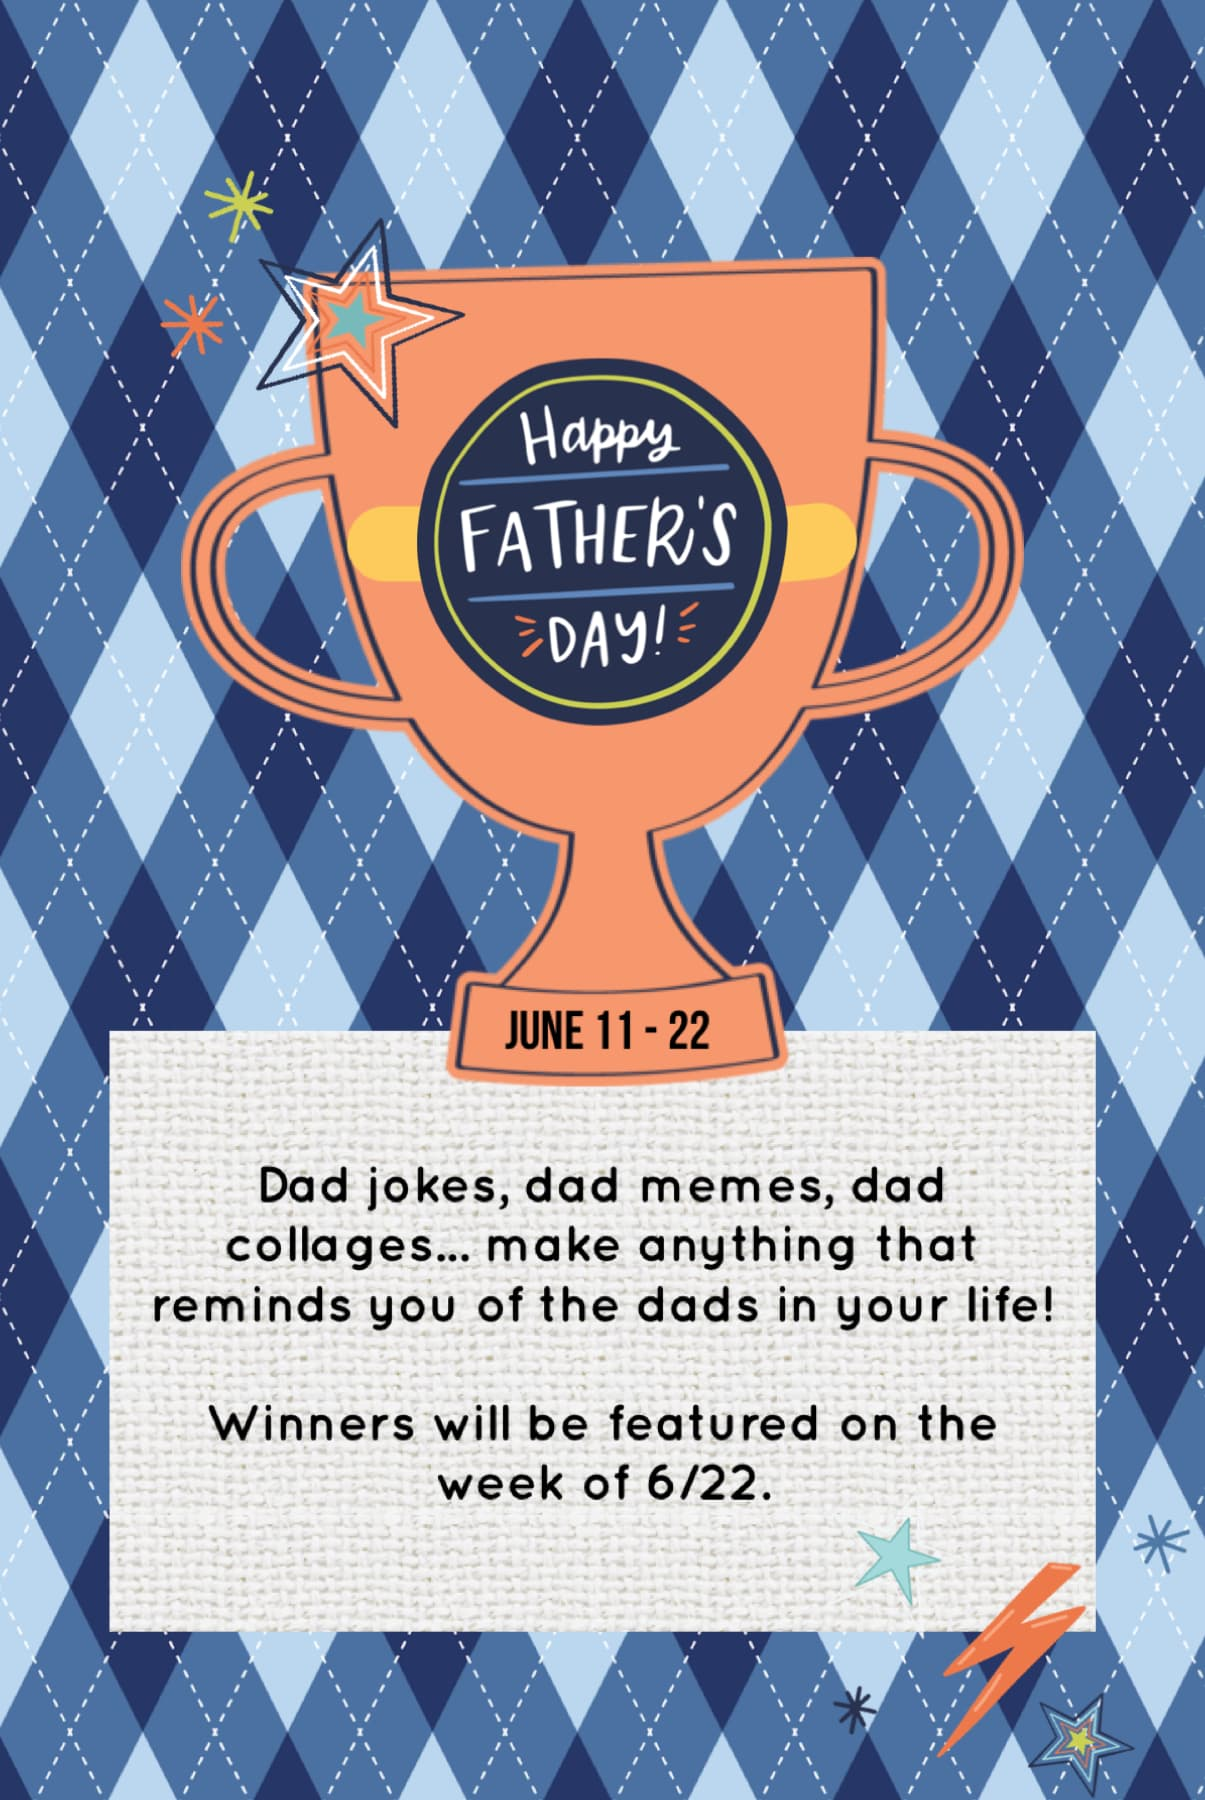 Father's Day contest is live! Submission period is extended this time 🤗